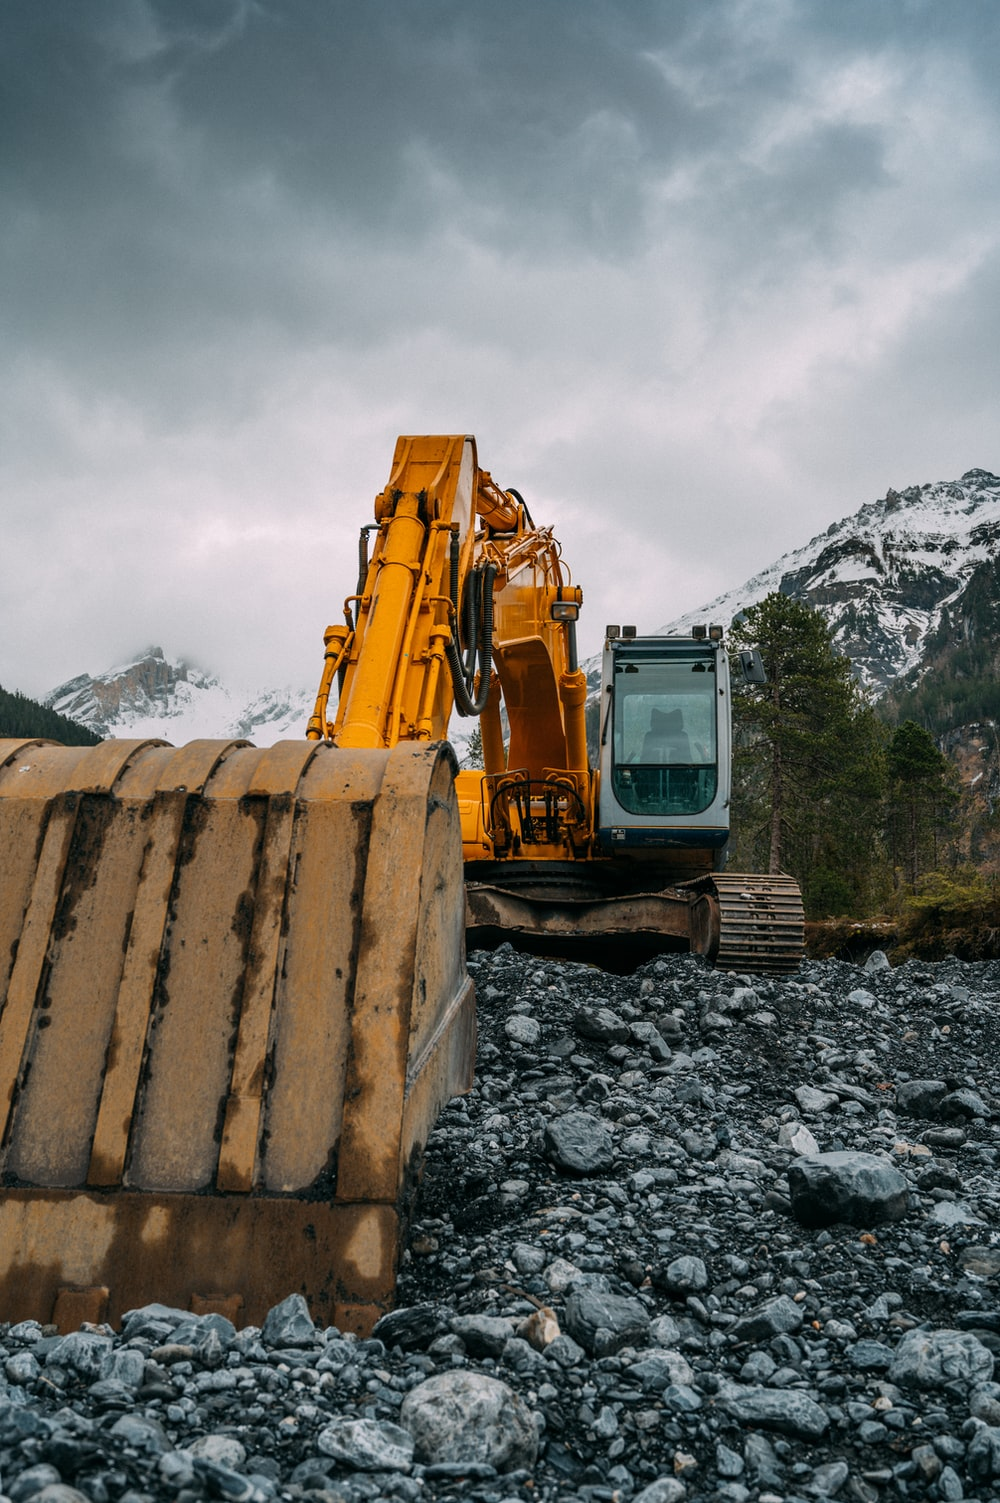 yellow and black heavy equipment on rocky ground